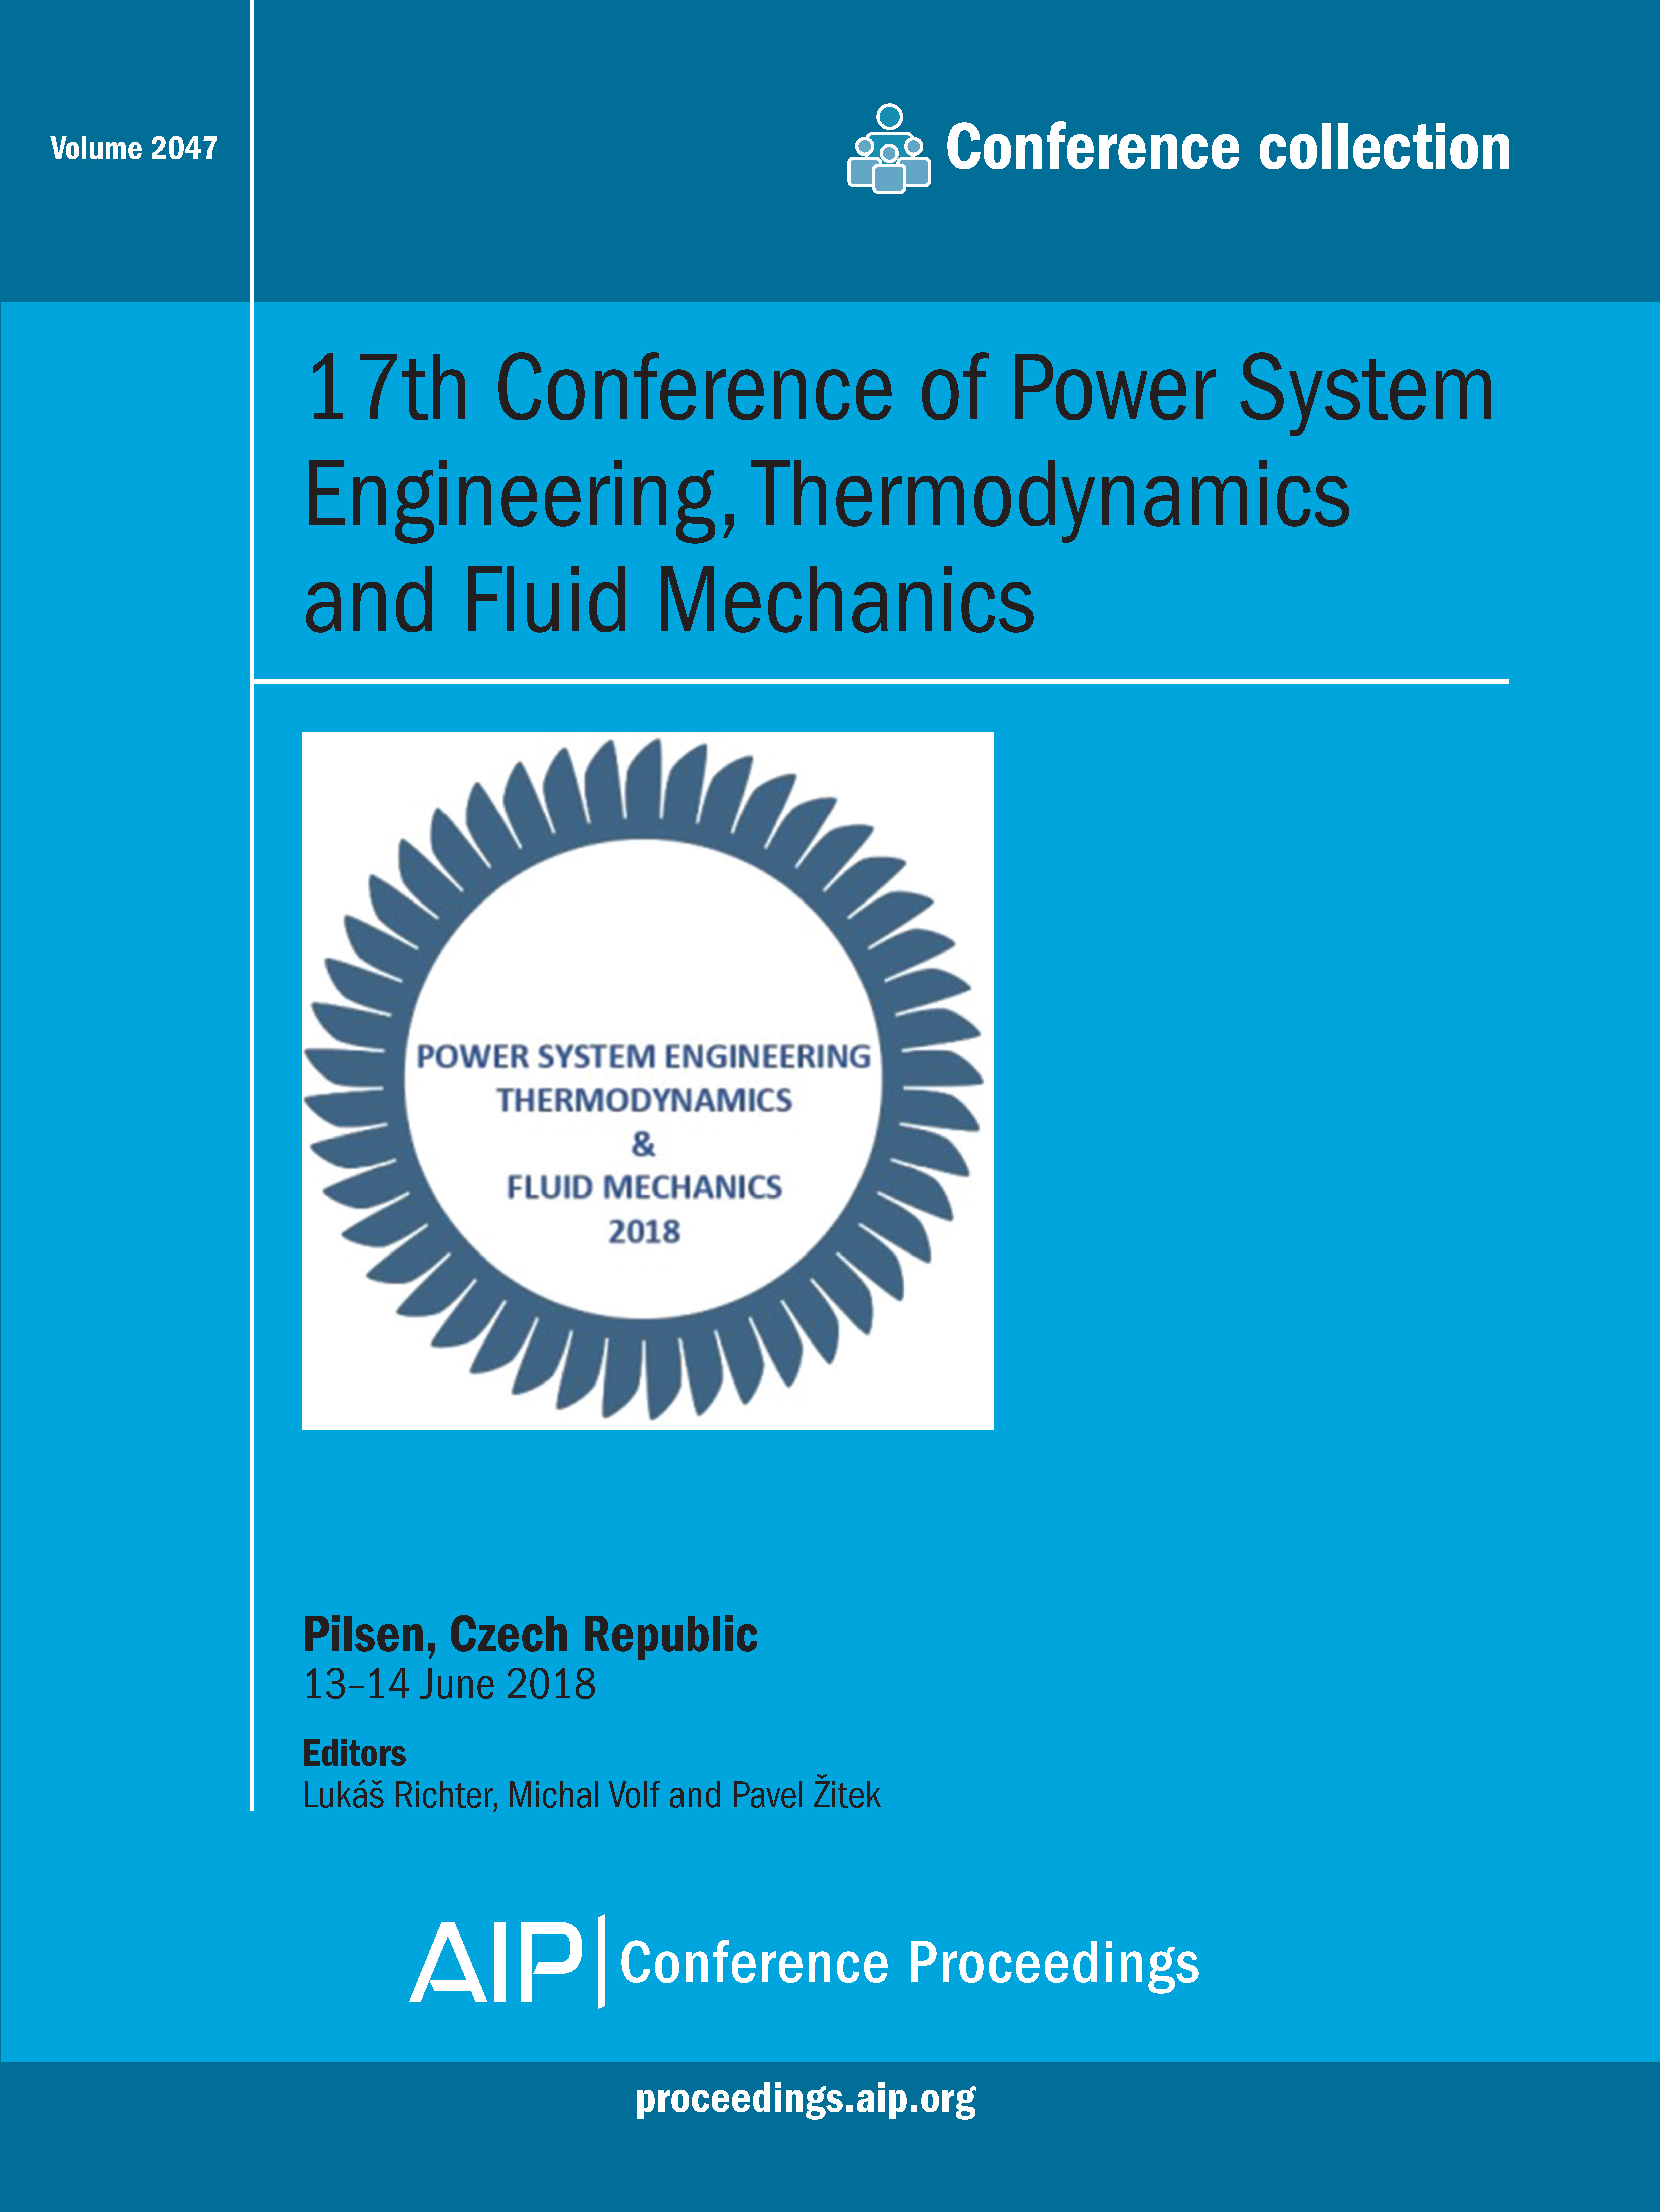 Volume 2047: 17th Conference of Power System Engineering